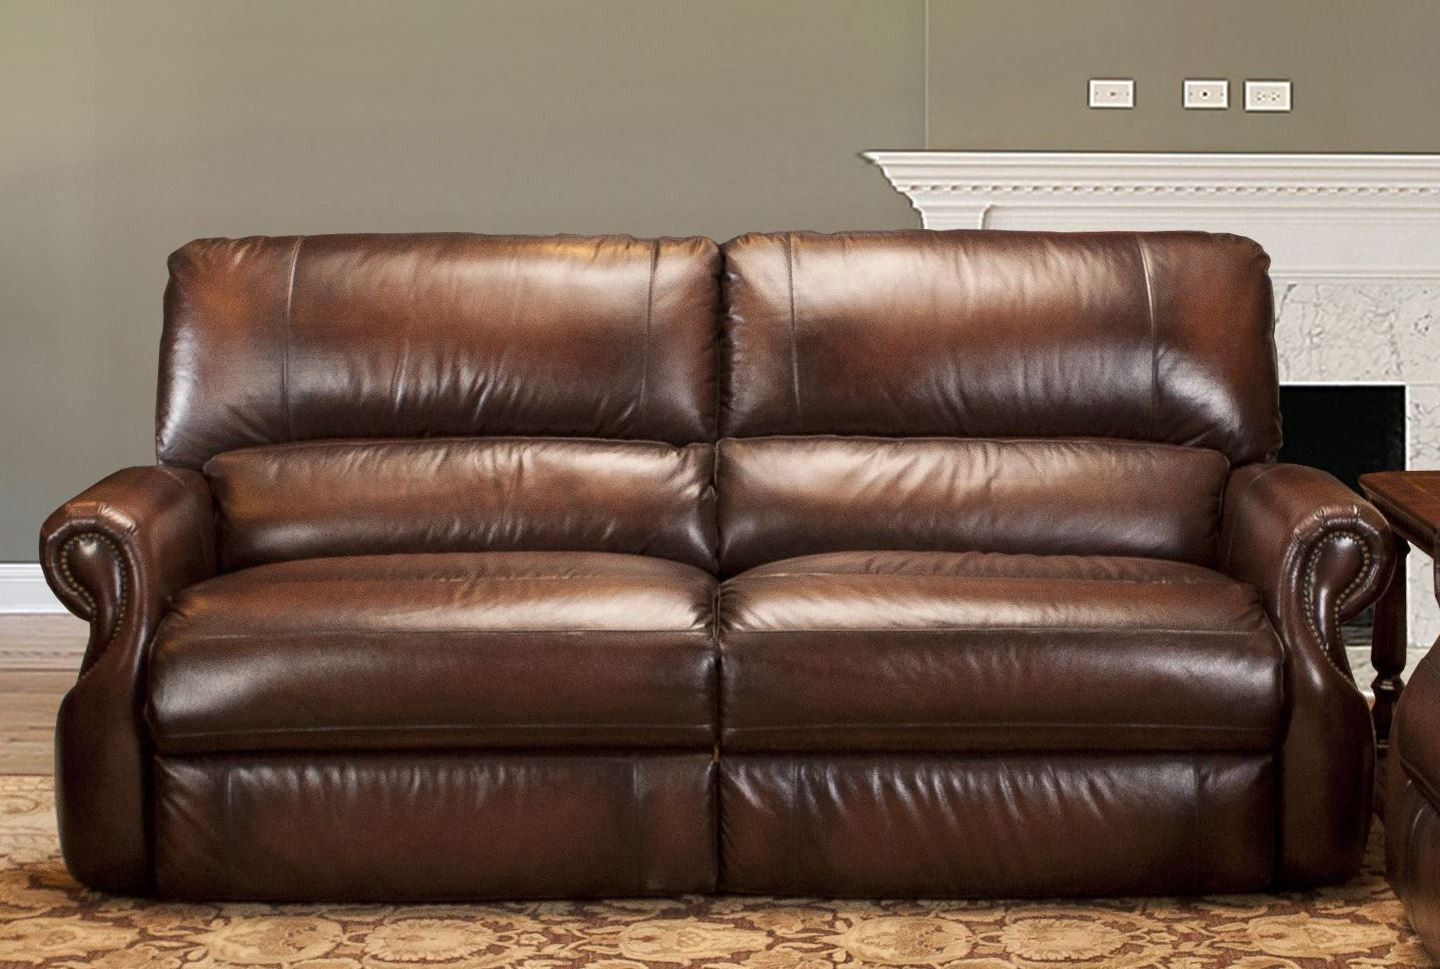 Hawthorne Brown Wipe Dual Power Reclining Sofa From Parker Living Mhaw 832p Br Coleman Furniture